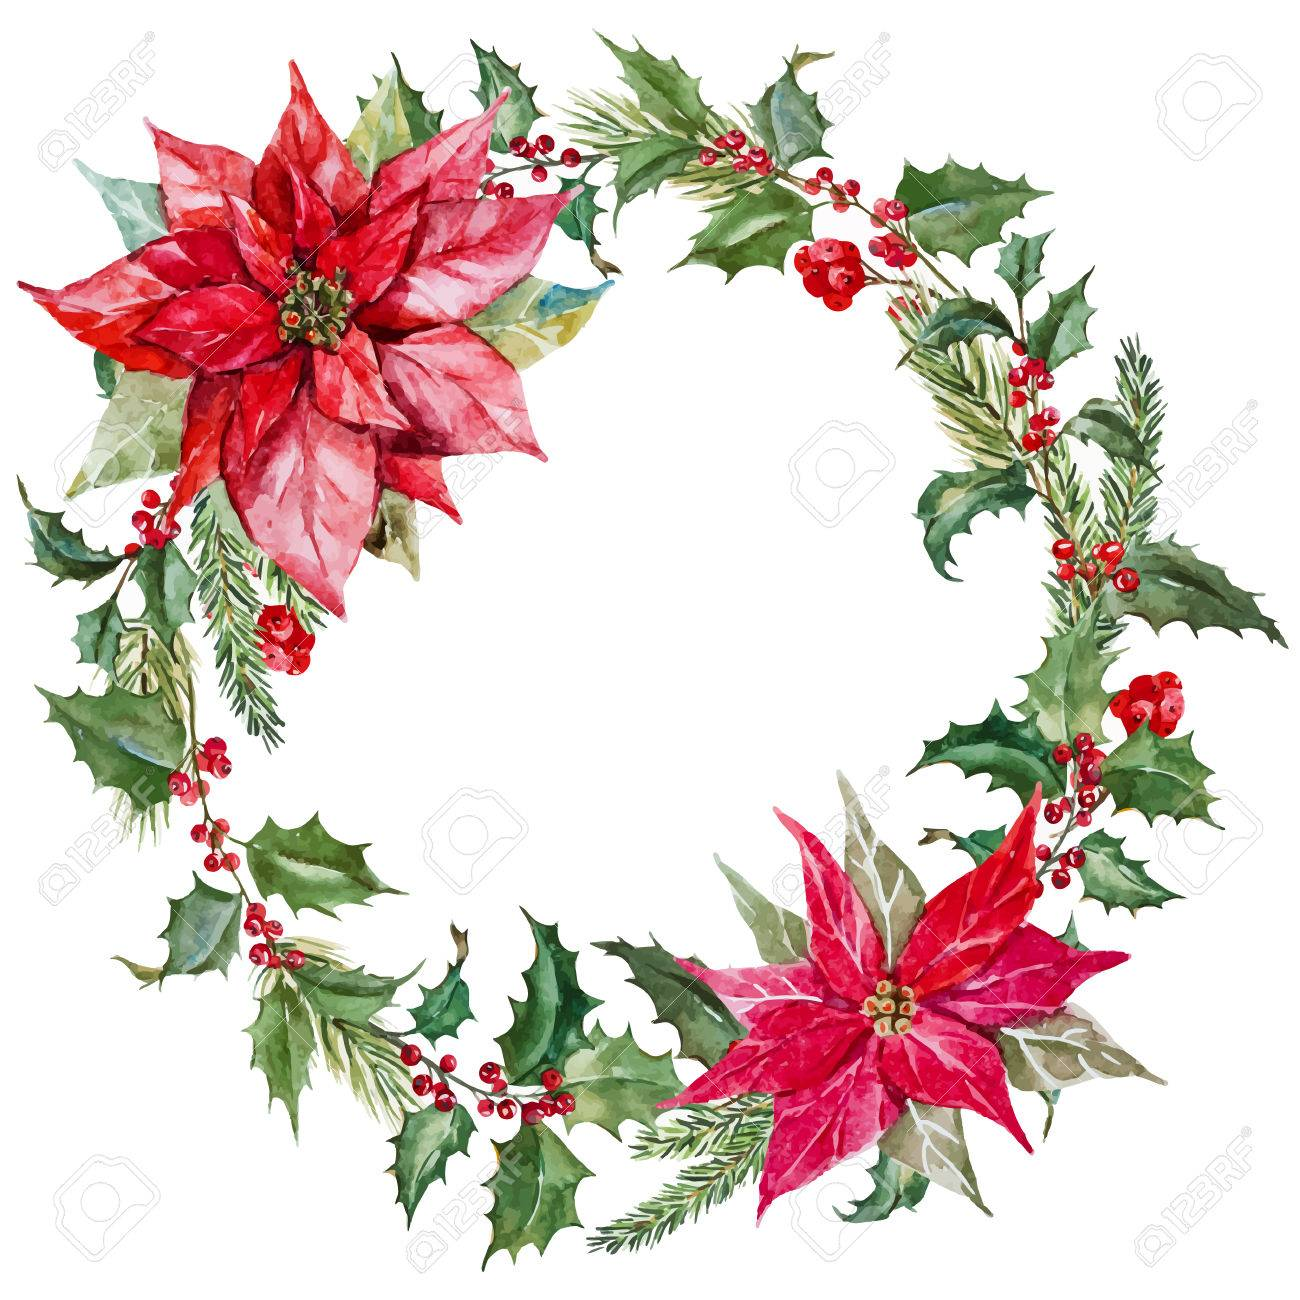 Beautiful Image With Nice Watercolor Christmas Wreath Royalty Free ...